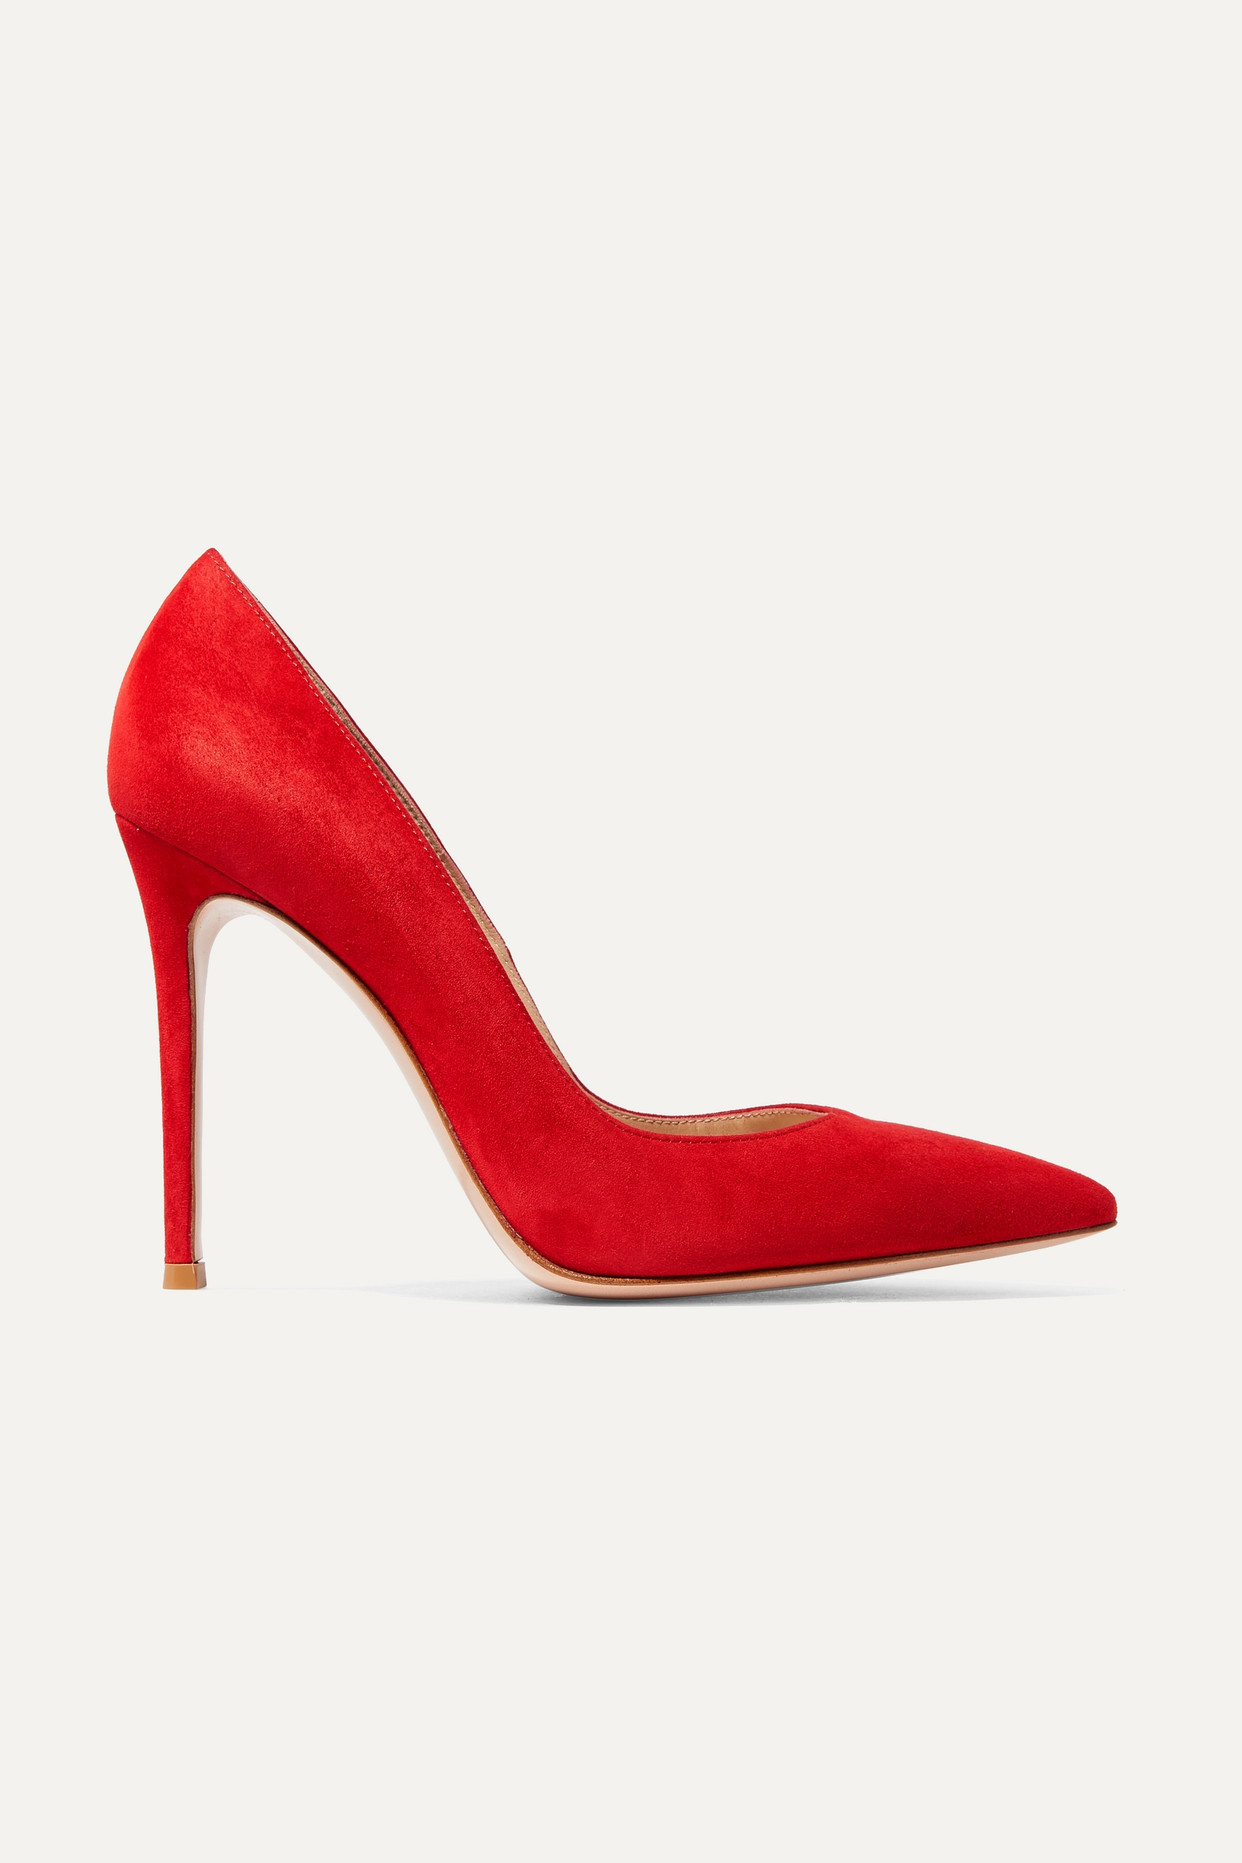 GIANVITO ROSSI - 105 Suede Pumps - Red - IT34